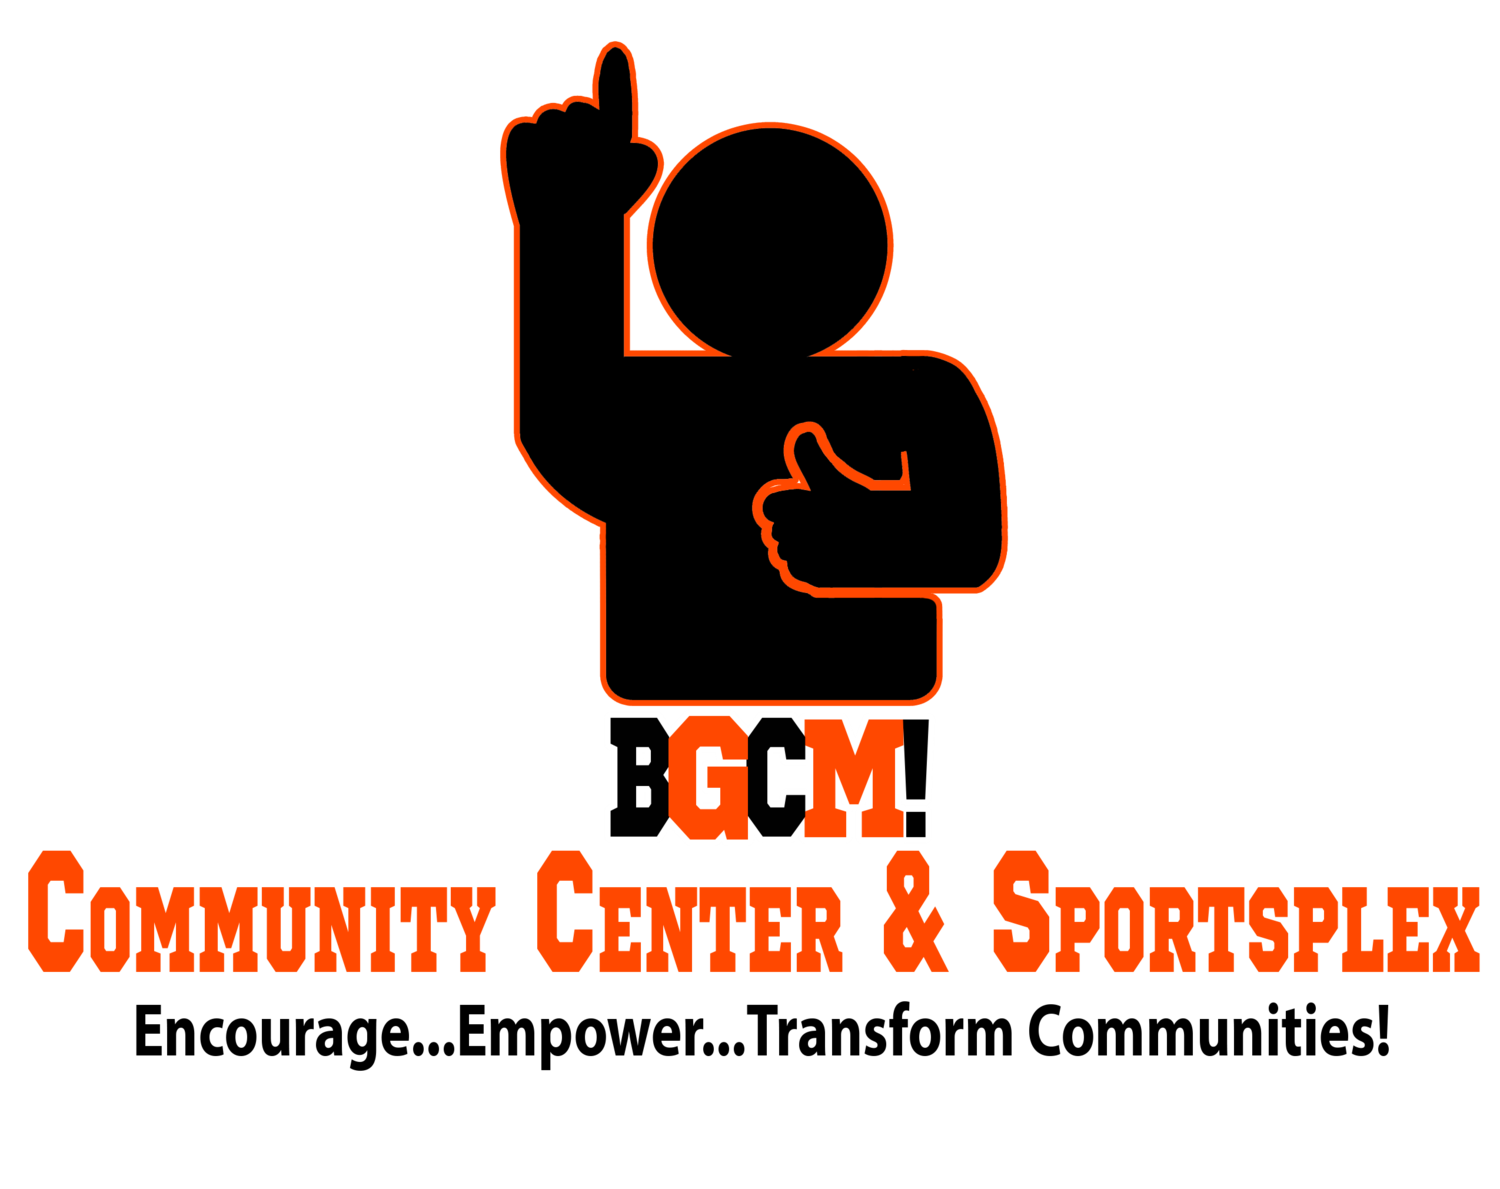 BGCM Community Center & Sportsplex - BGCMe.org